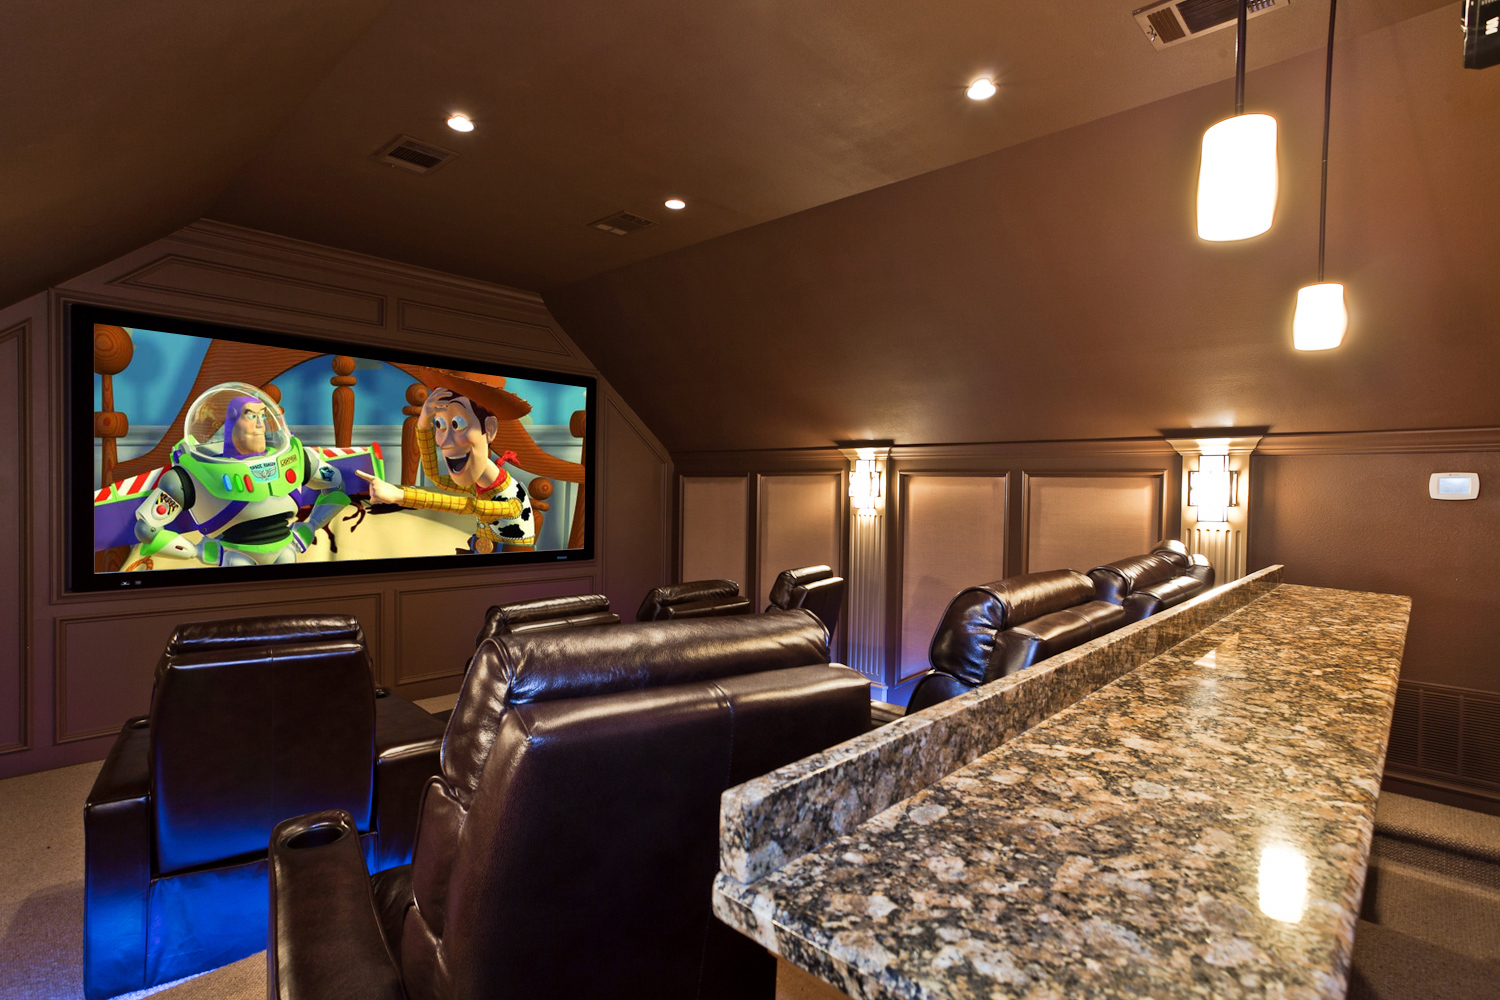 Design, rendering and construction of theater in Fairview, TX